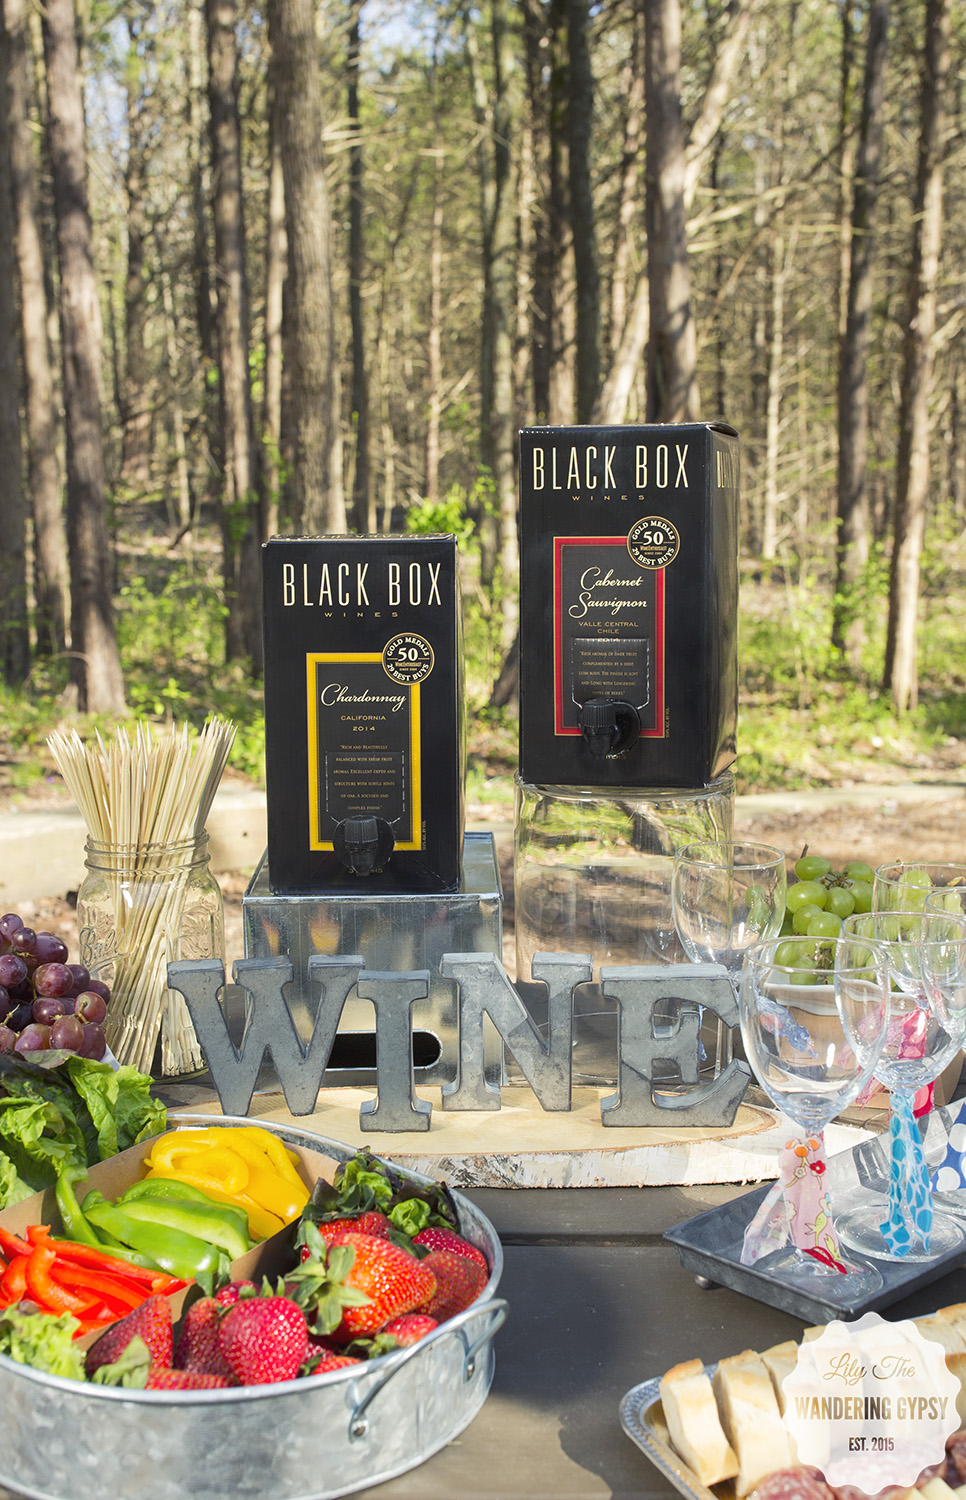 Cute Summer Party Ideas! #BlackBoxSummer #CollectiveBias (Msg4 21+)